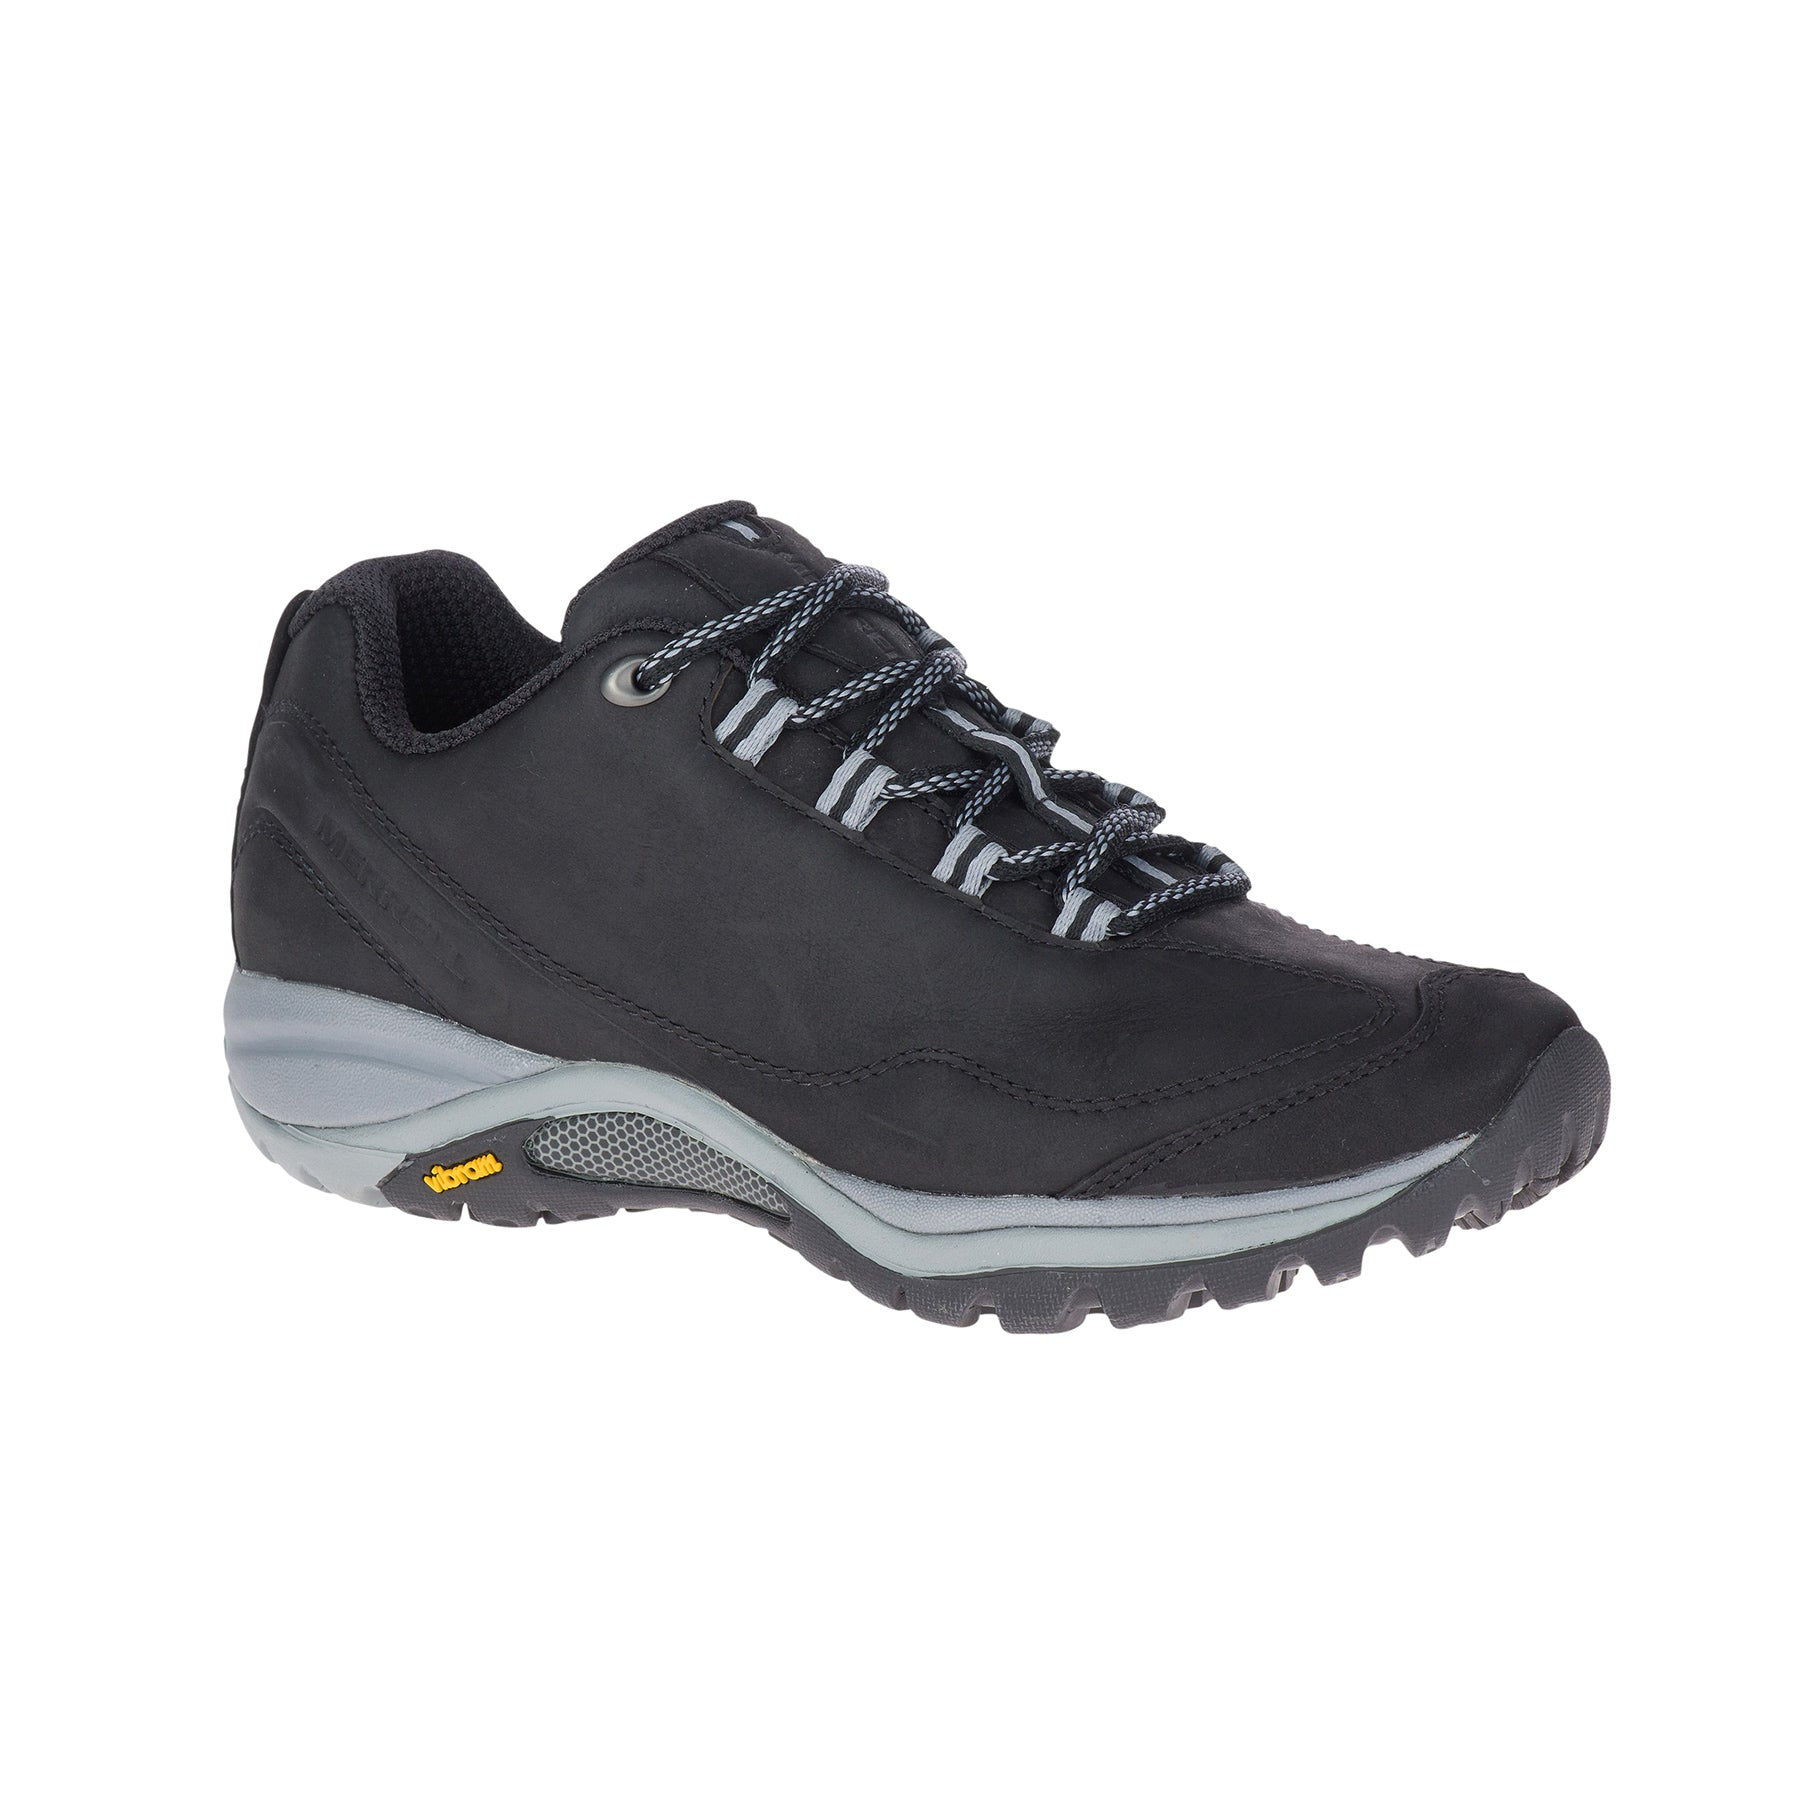 merrell siren traveller 3 womens hiking shoe black side view